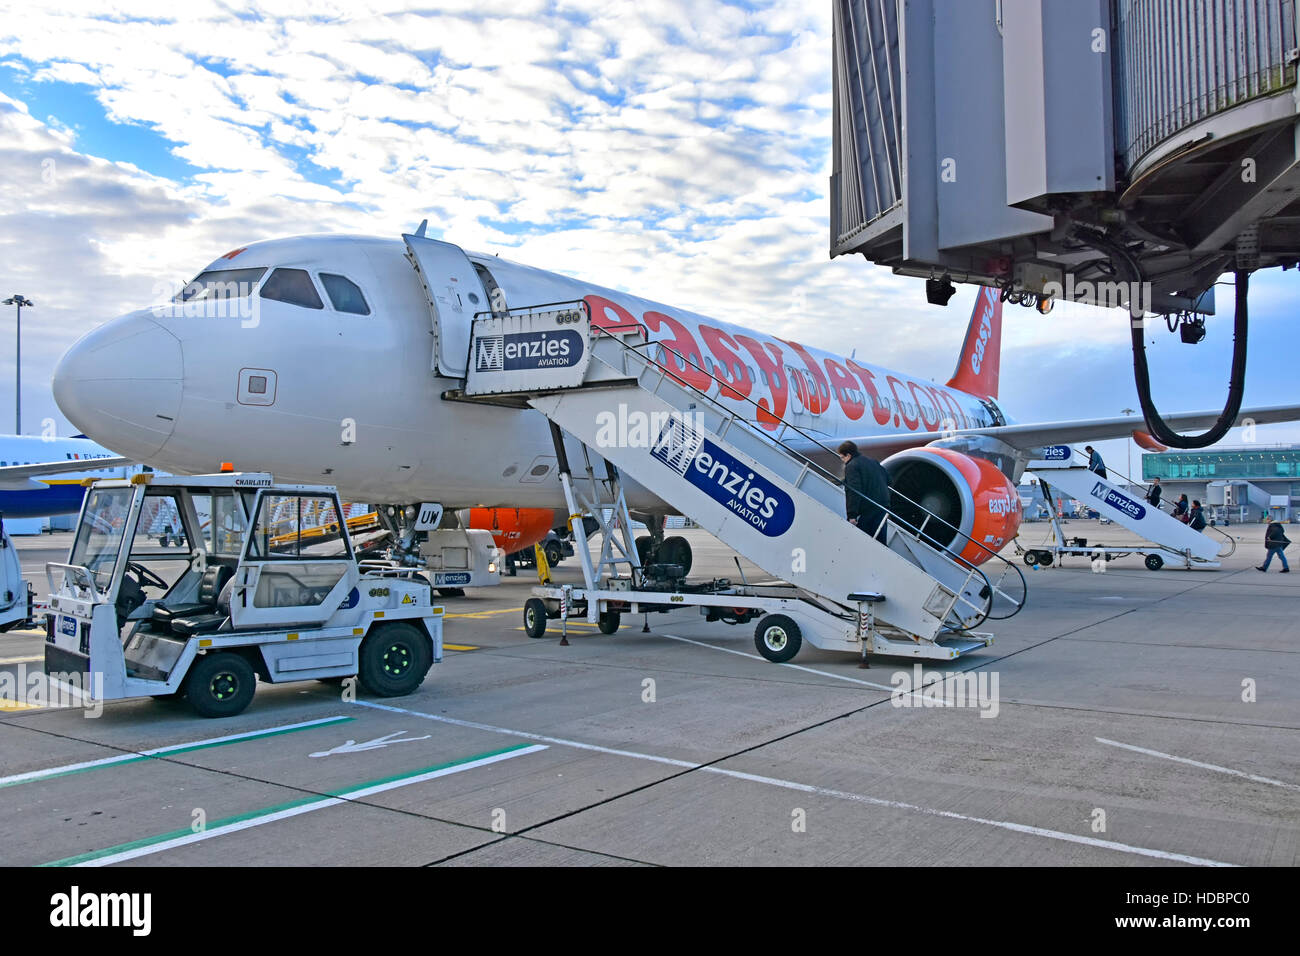 Stansted Airport London, passengers Menzies Aviation boarding steps walk EasyJet airplane unused jet bridge plane - Stock Image